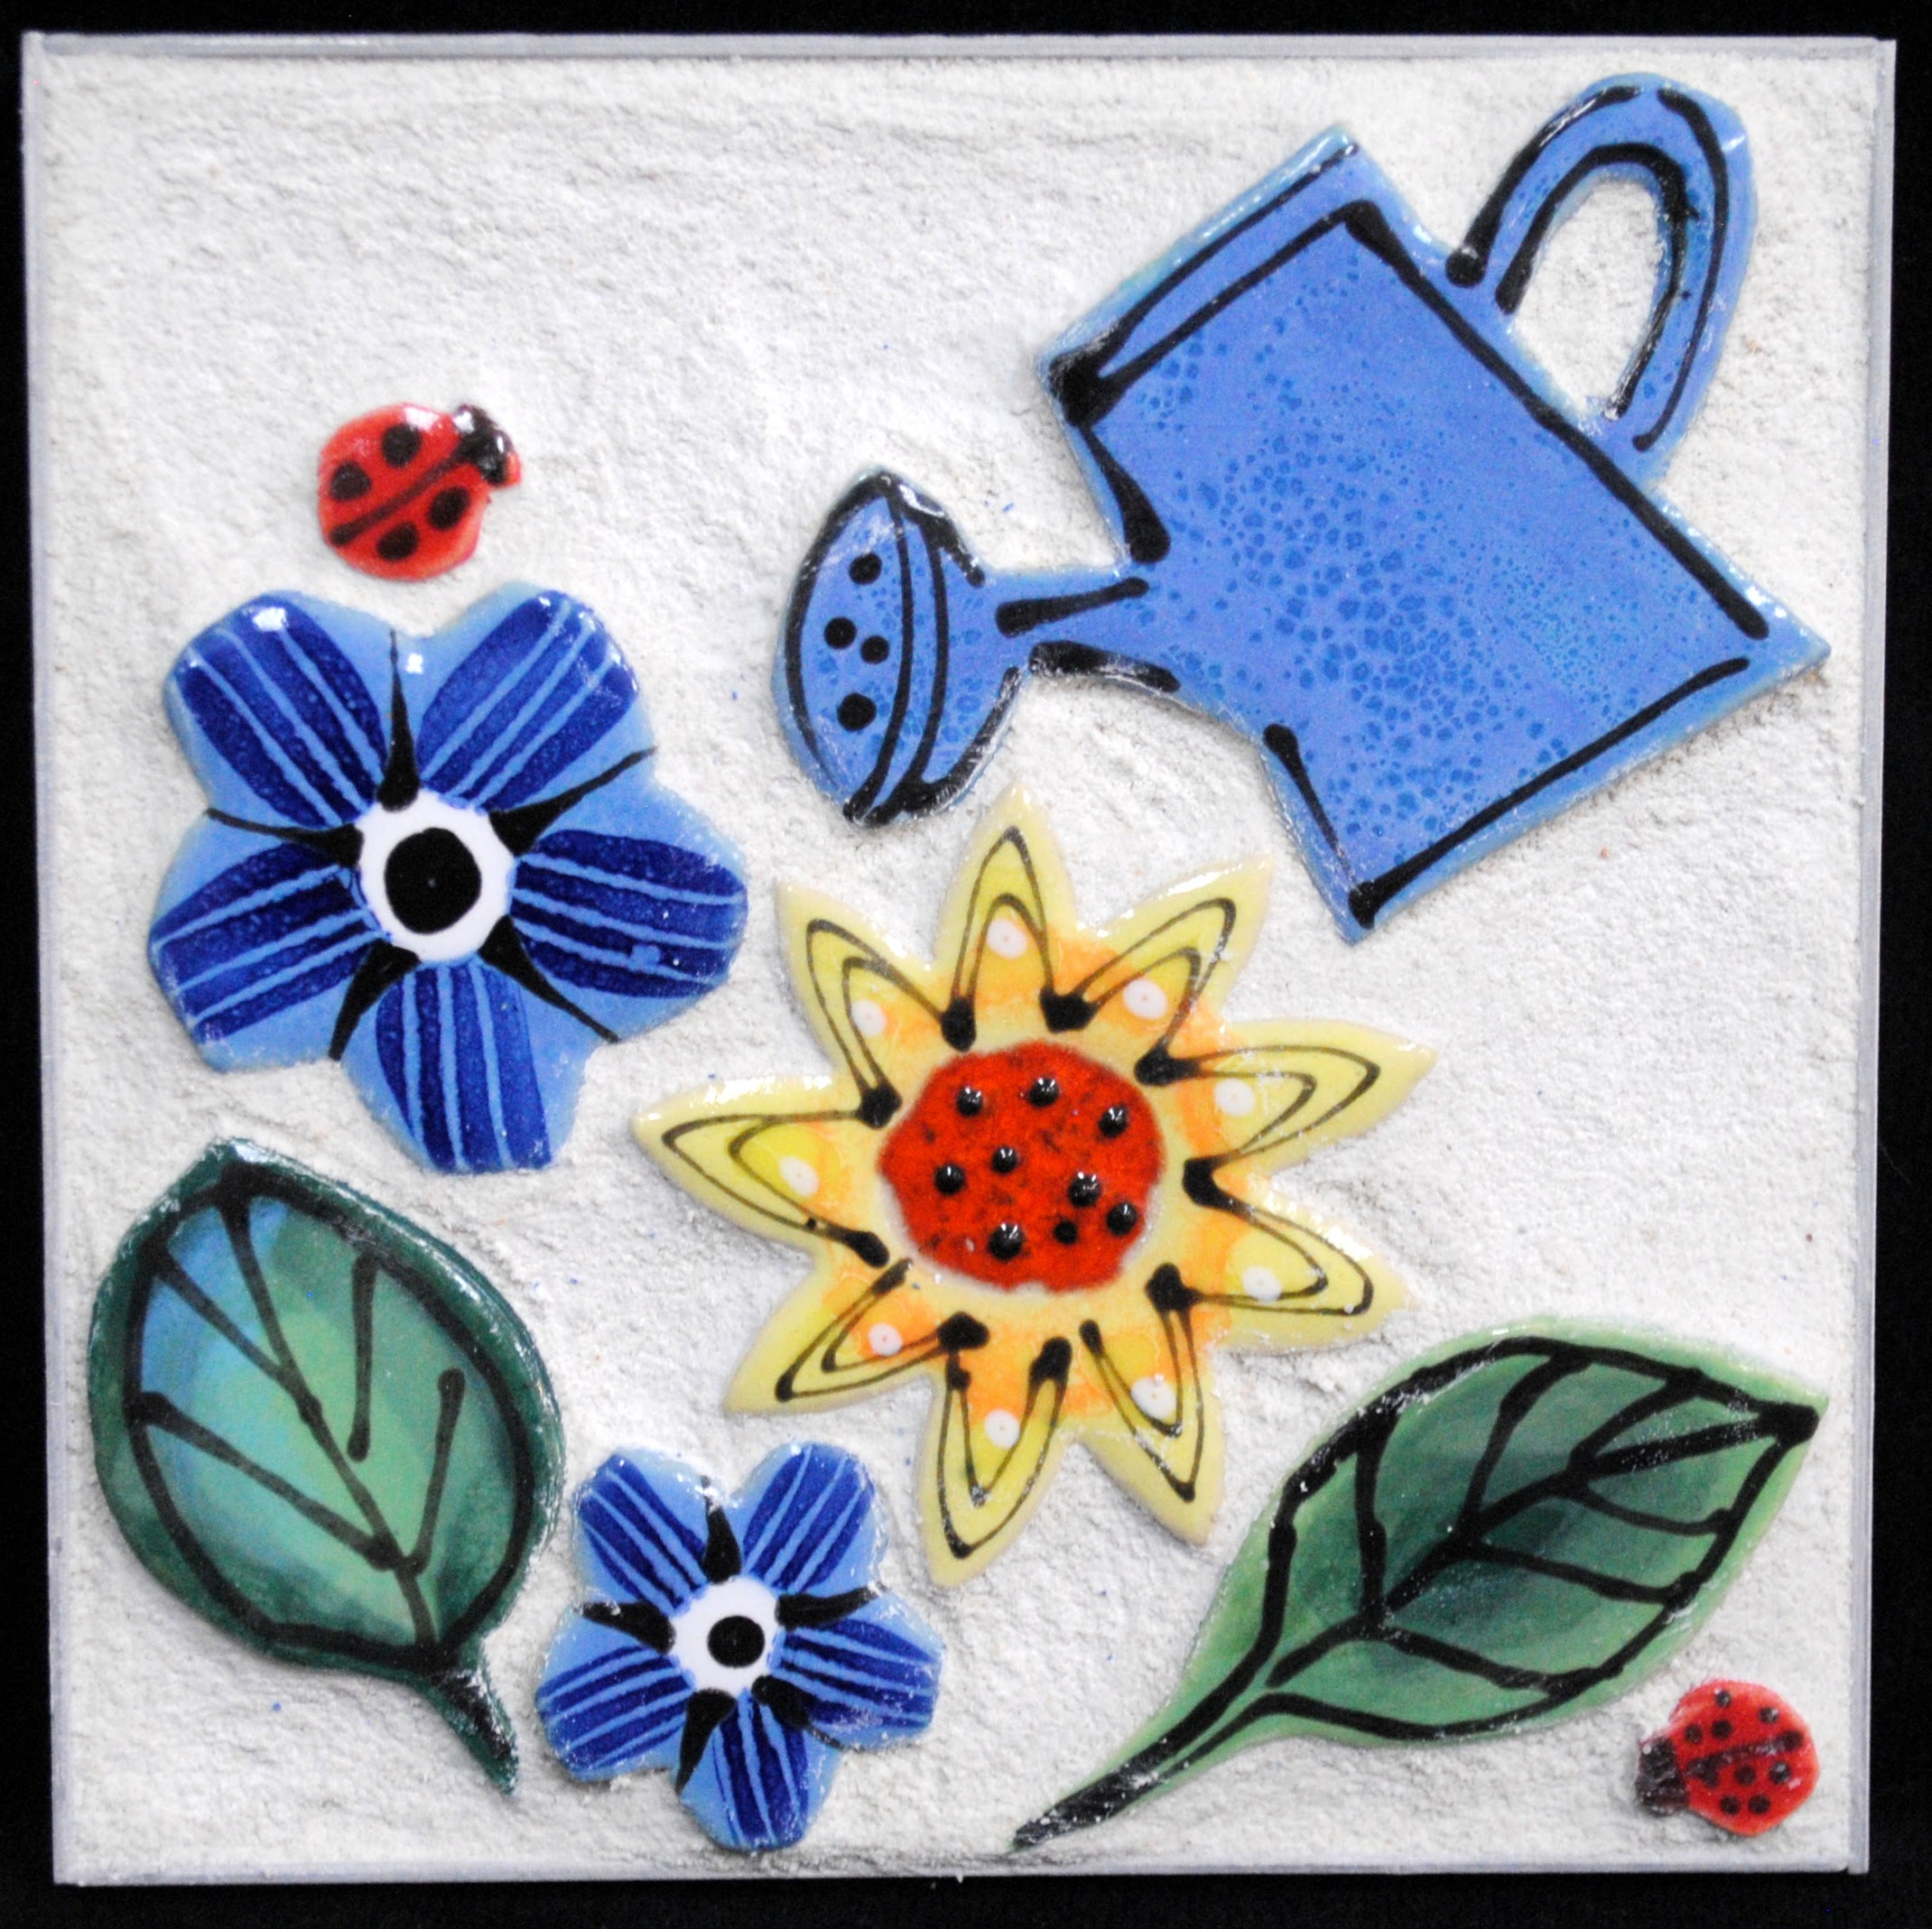 Flower Garden With A Watering Can Mini Mosaic by Brenda Pokorny